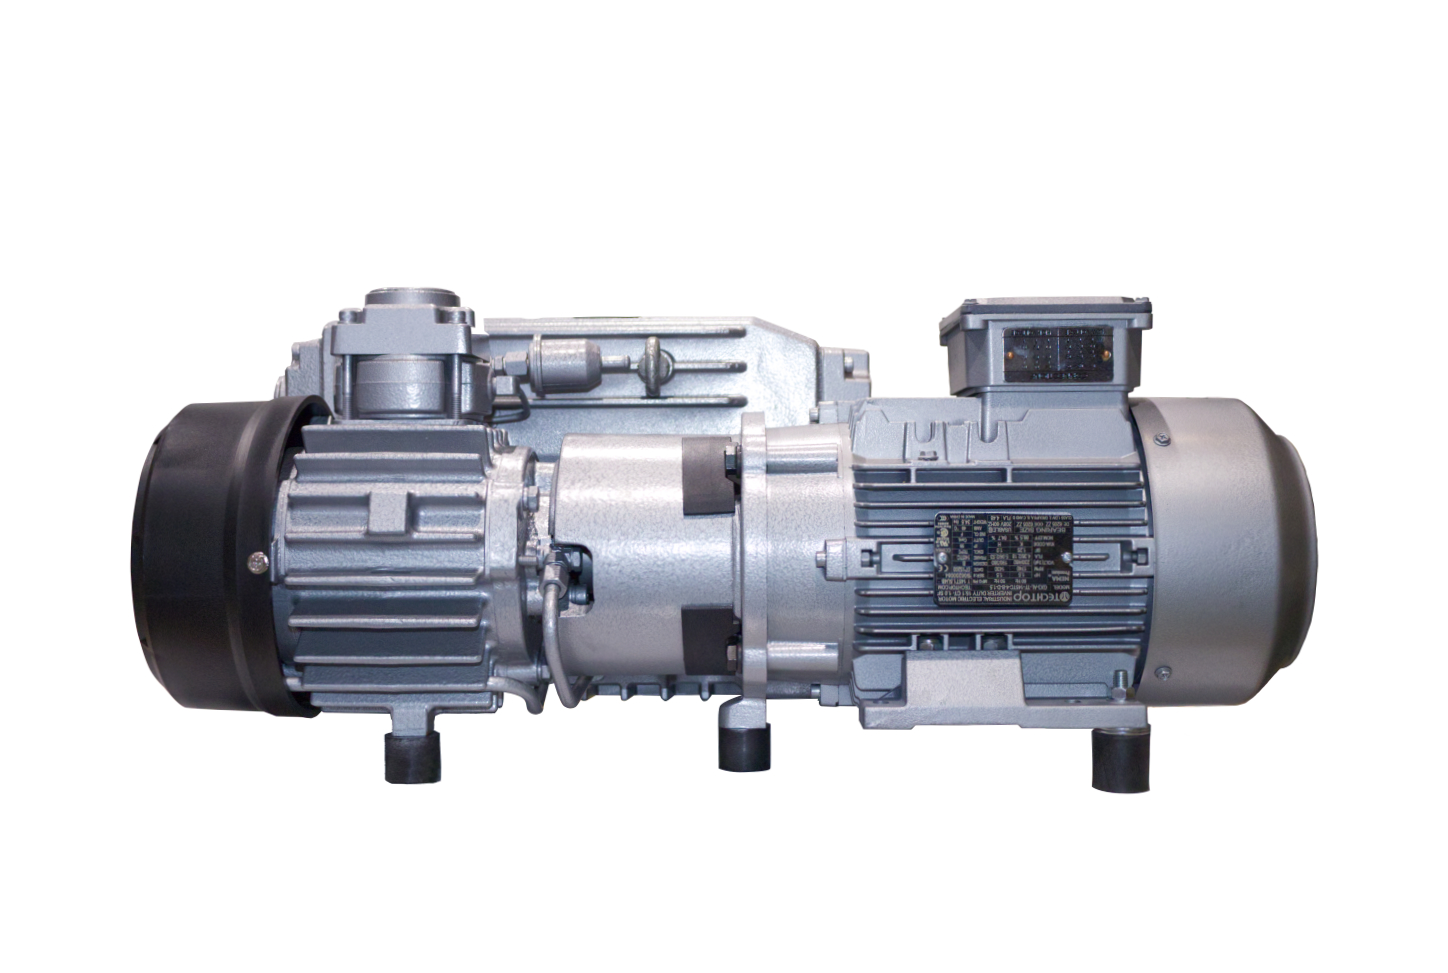 Vacuum Pumps -1.5HP-21CFM (208V/230V/460V 50/60C 3PH)